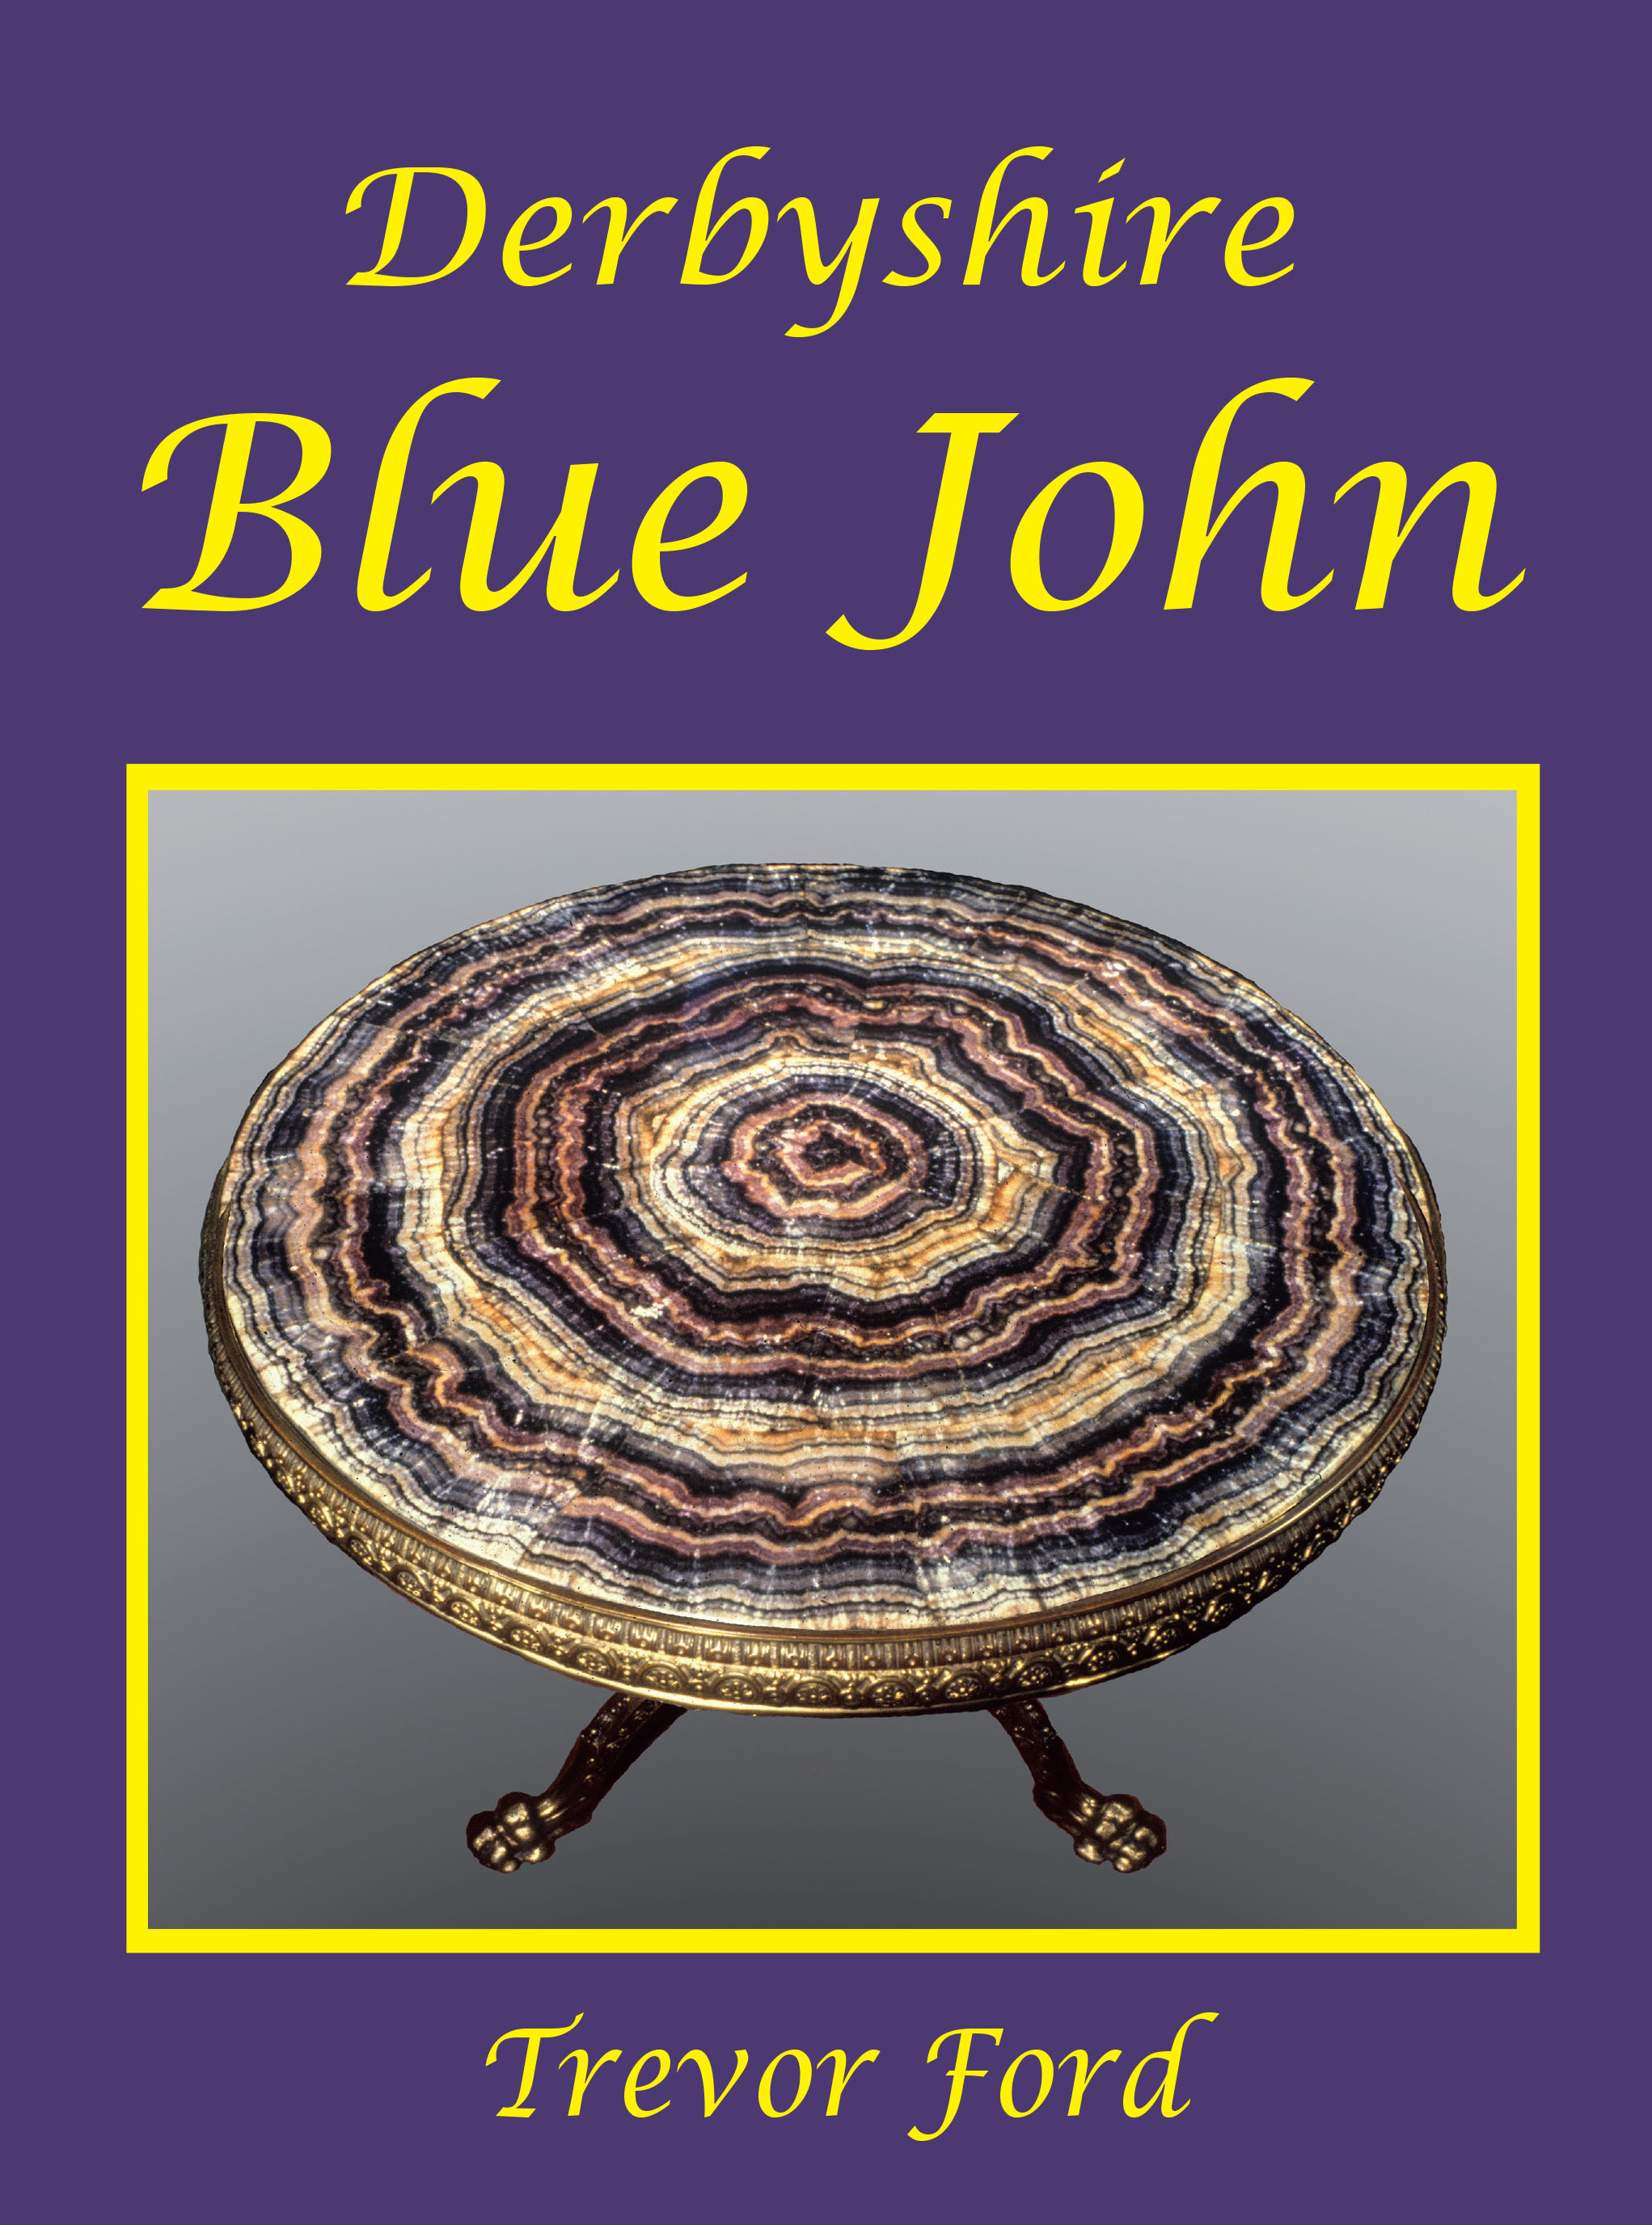 Derbyshire Blue John (available from March 2019)